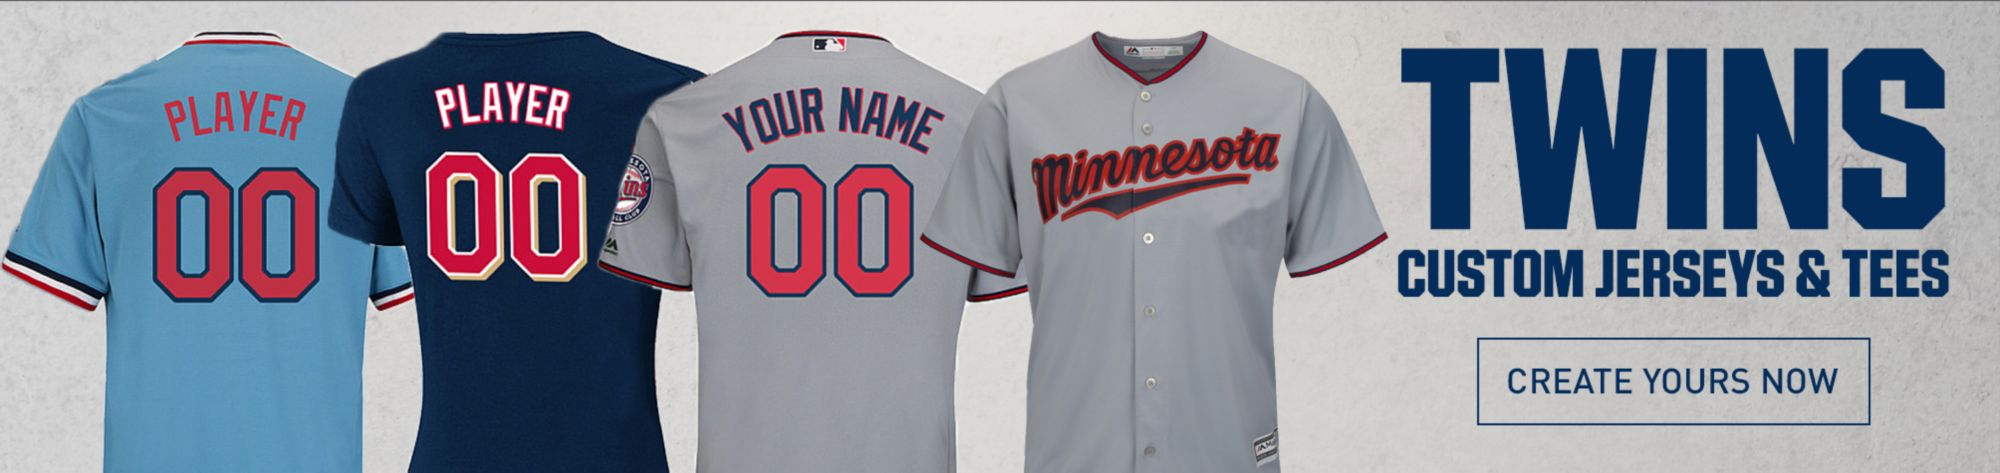 Minnesota Twins Custom Jerseys and Tees